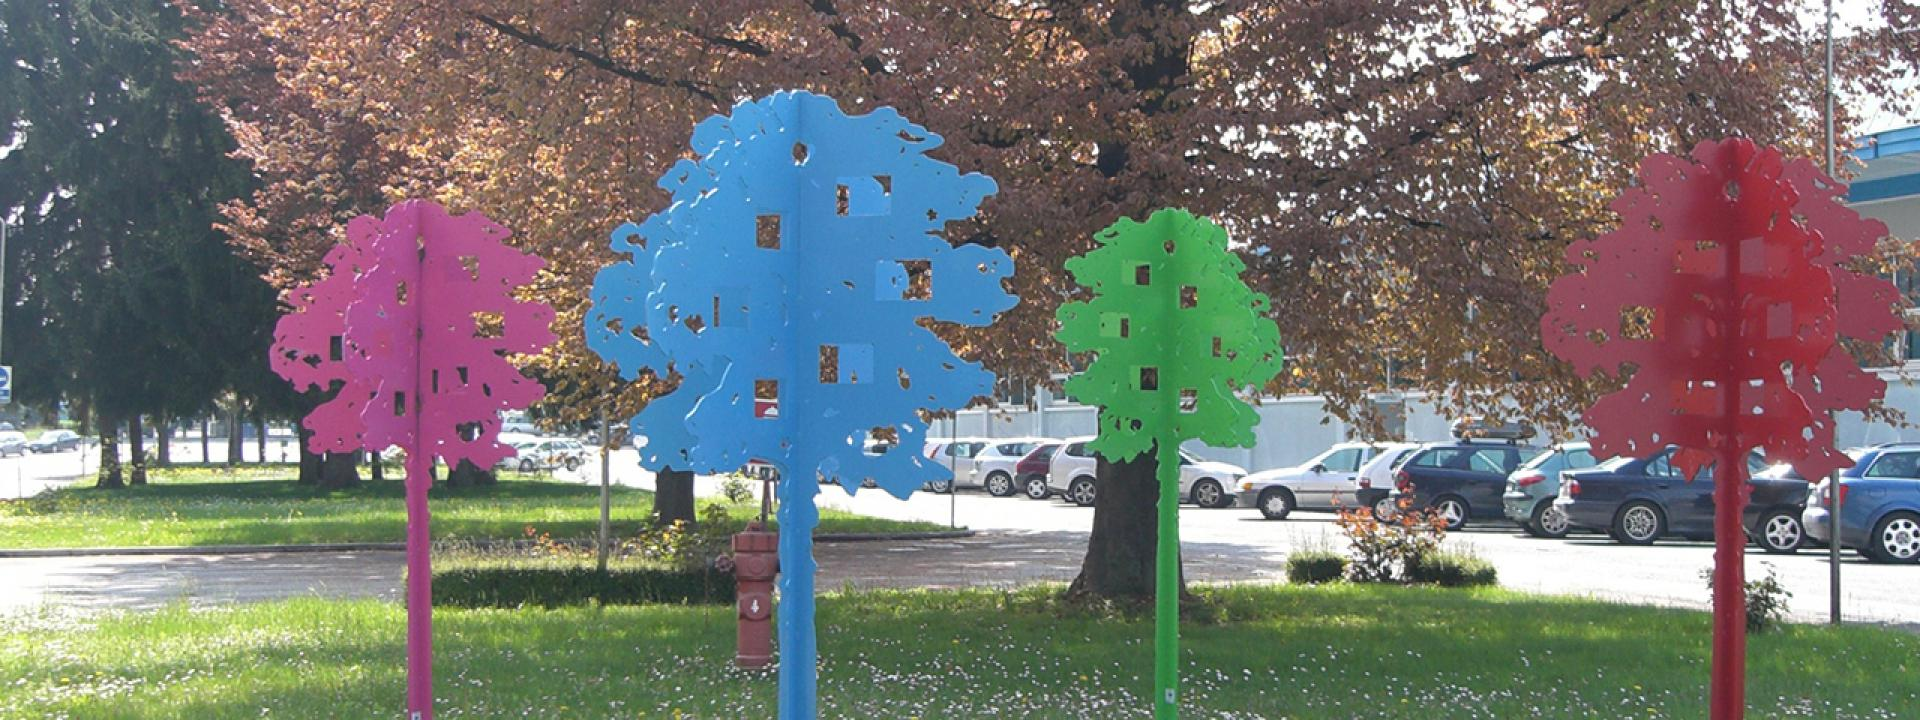 AGC trees in Cuneo (Italy)